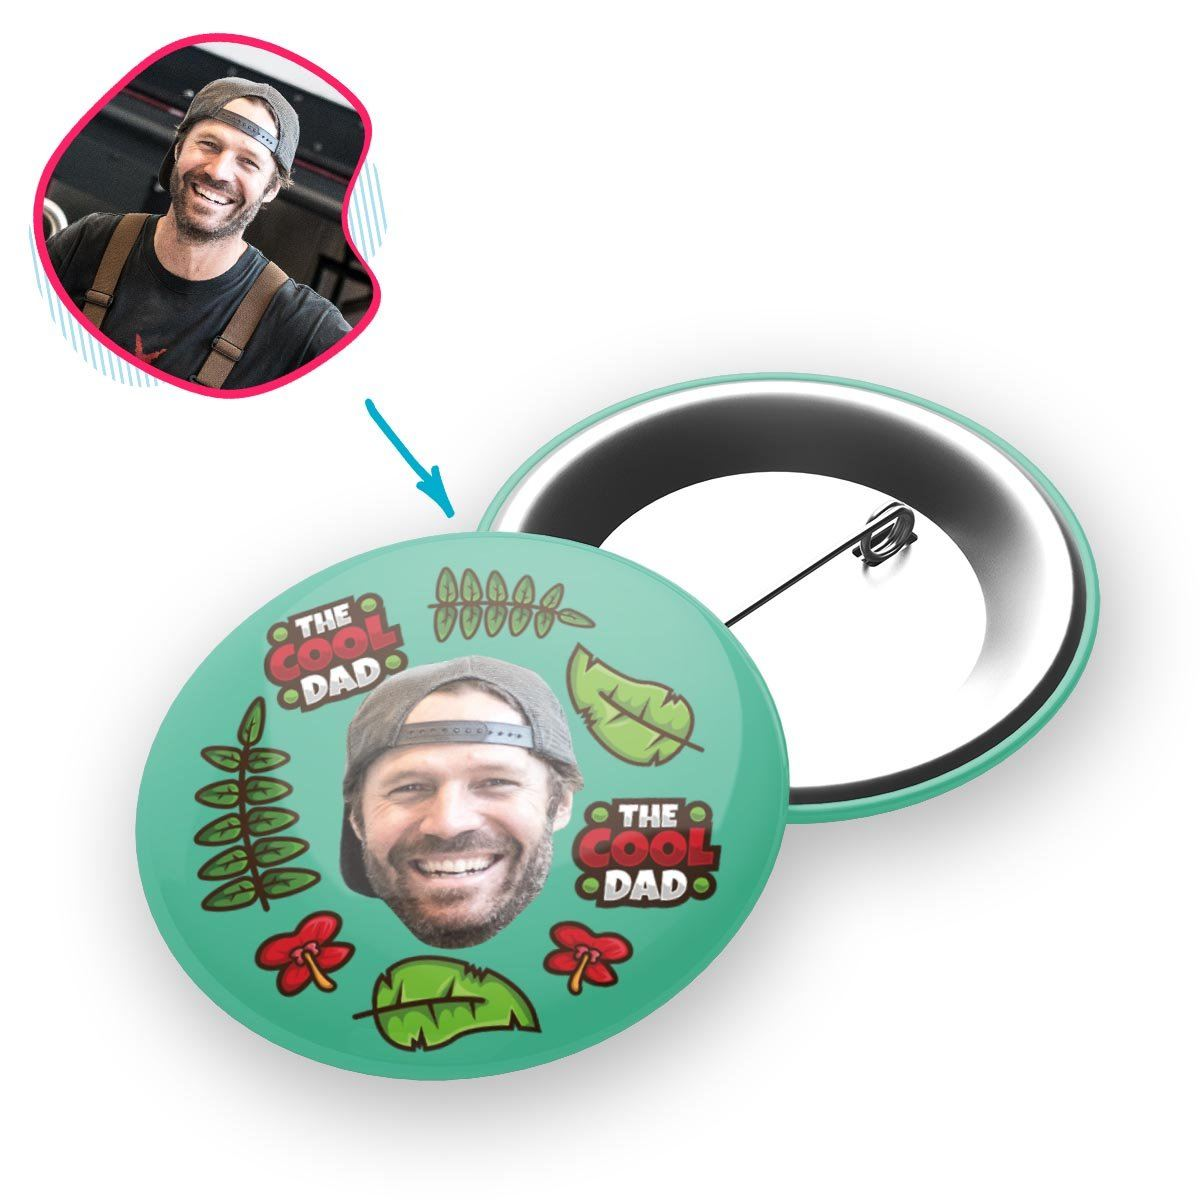 mint The Cool Dad pin personalized with photo of face printed on it